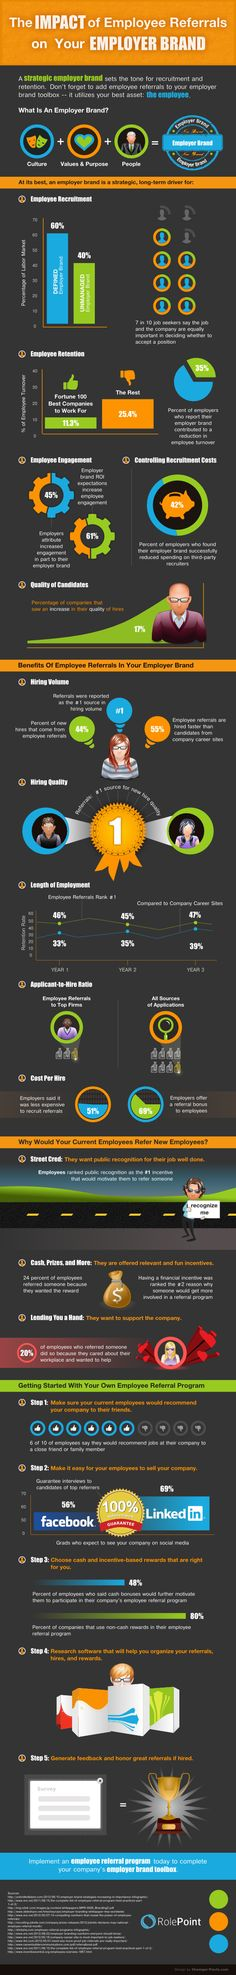 The impact of employee referrals on your brand [infographic]